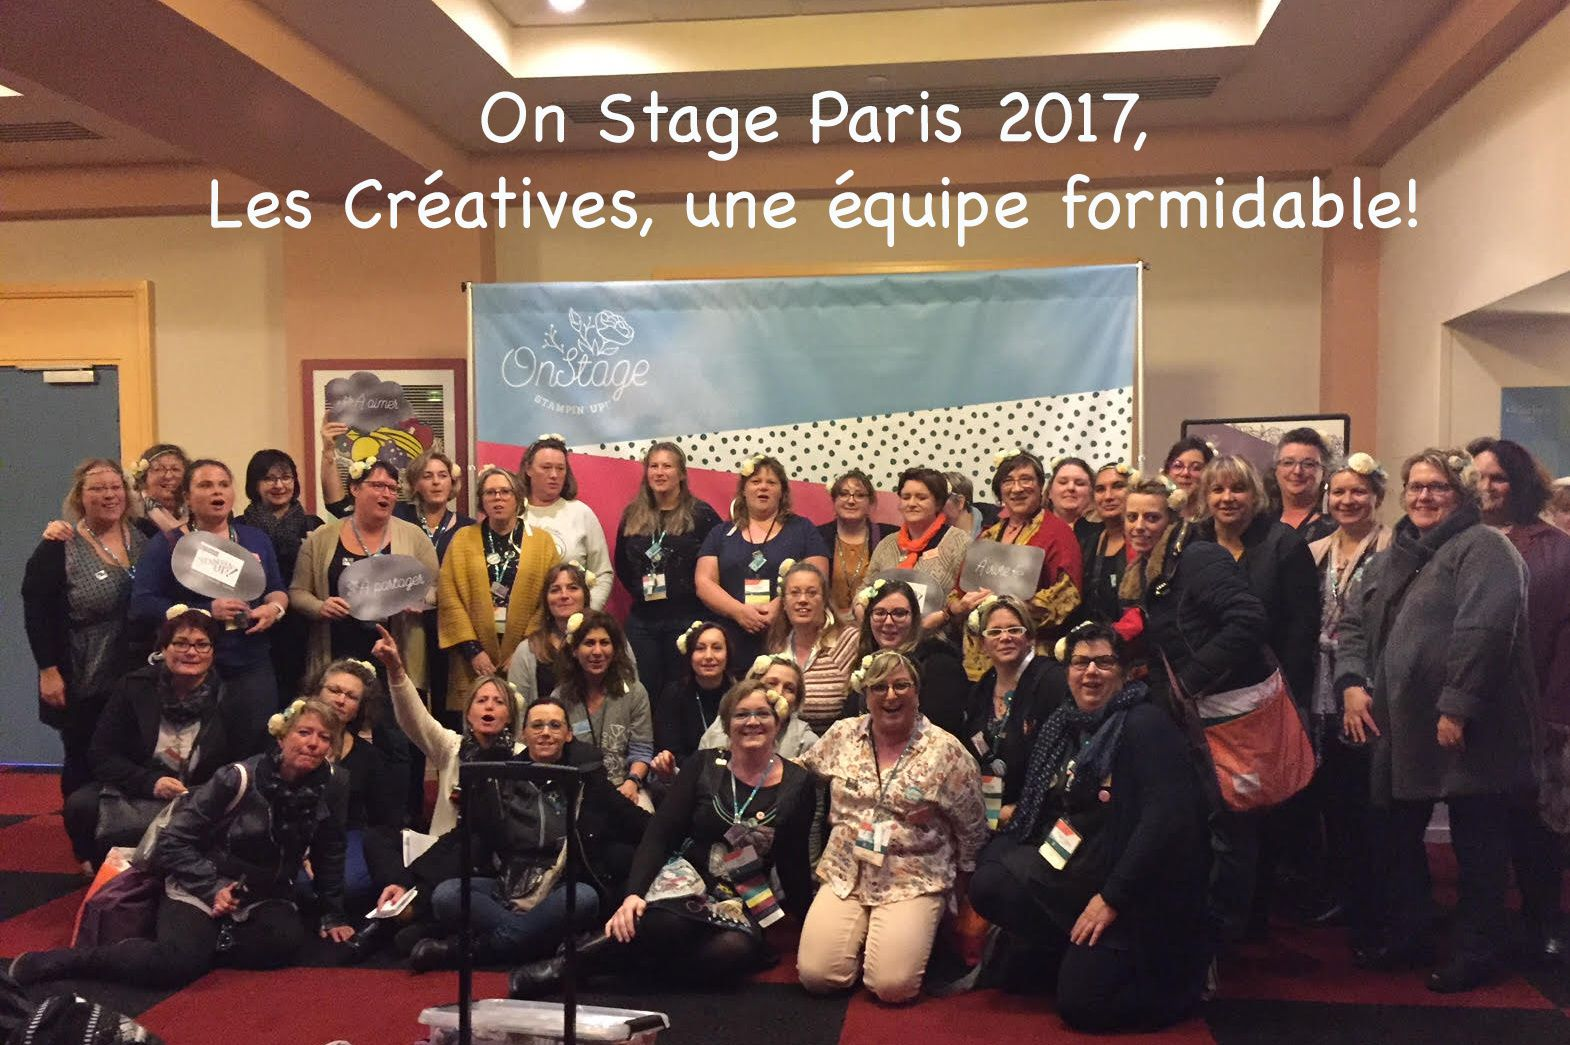 On Stage Paris 2017, un week-end mémorable!